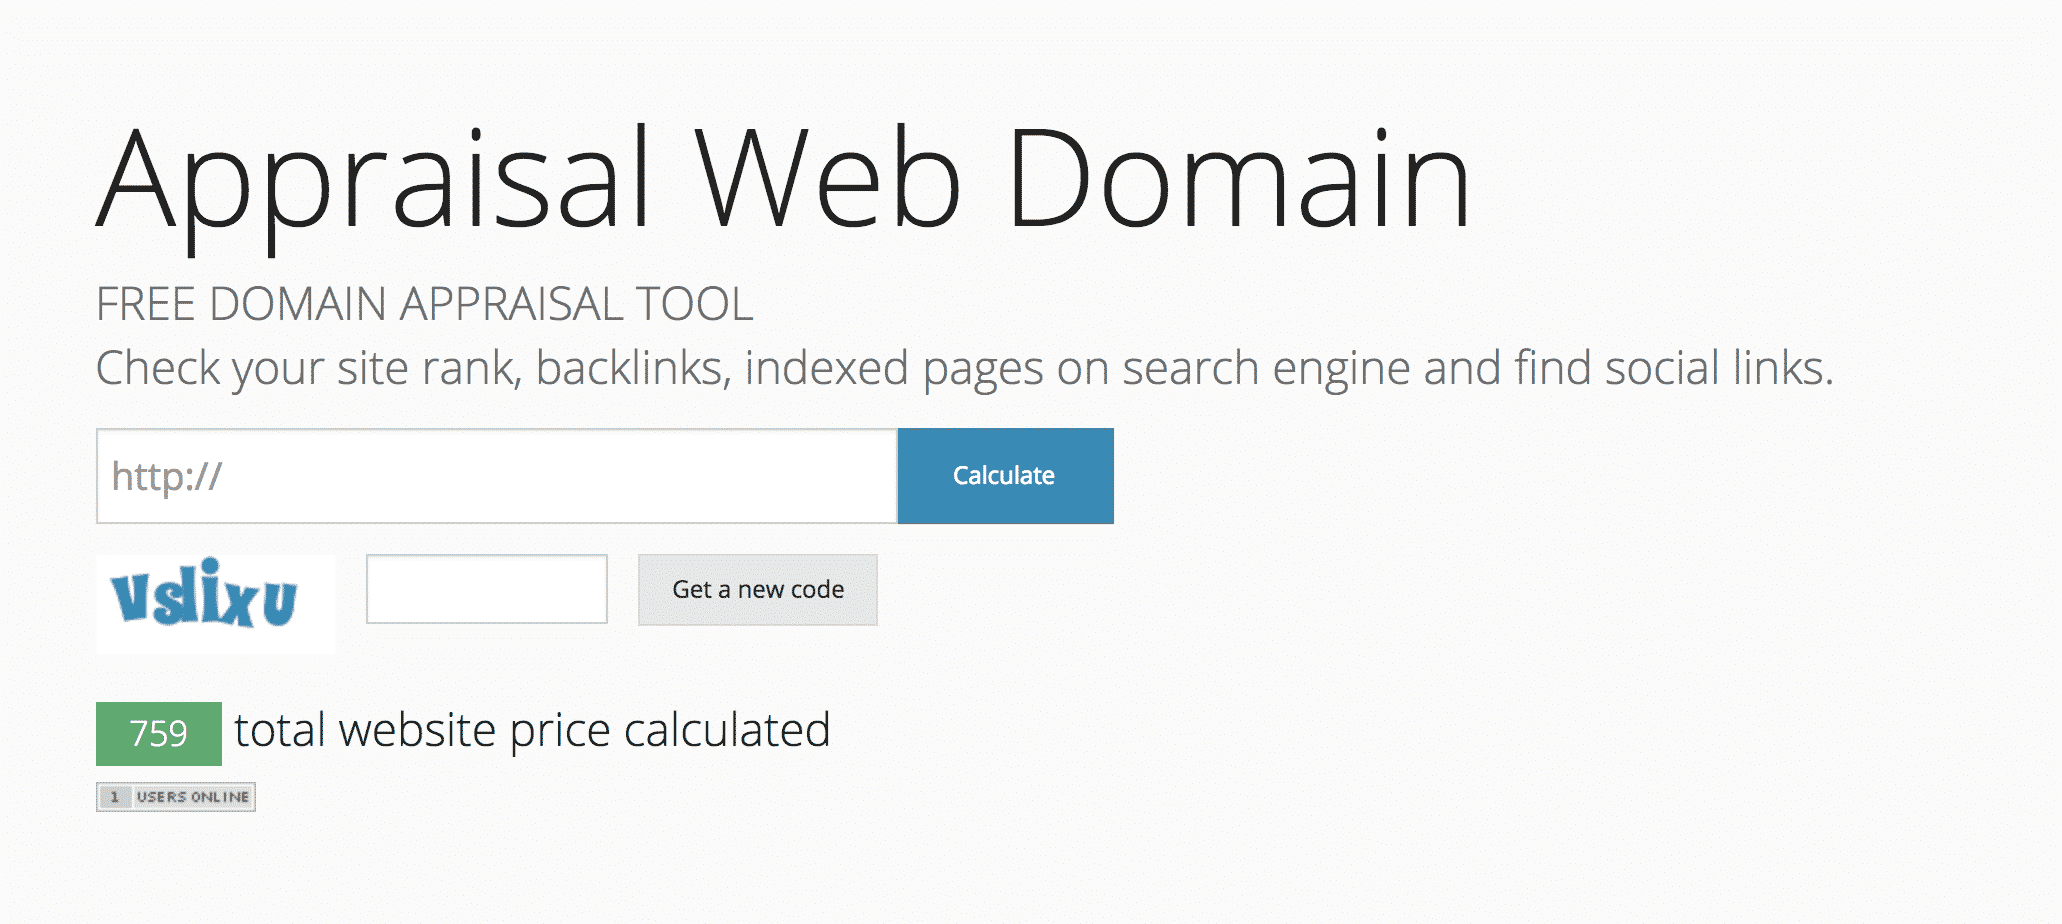 Appraisal Web Domain